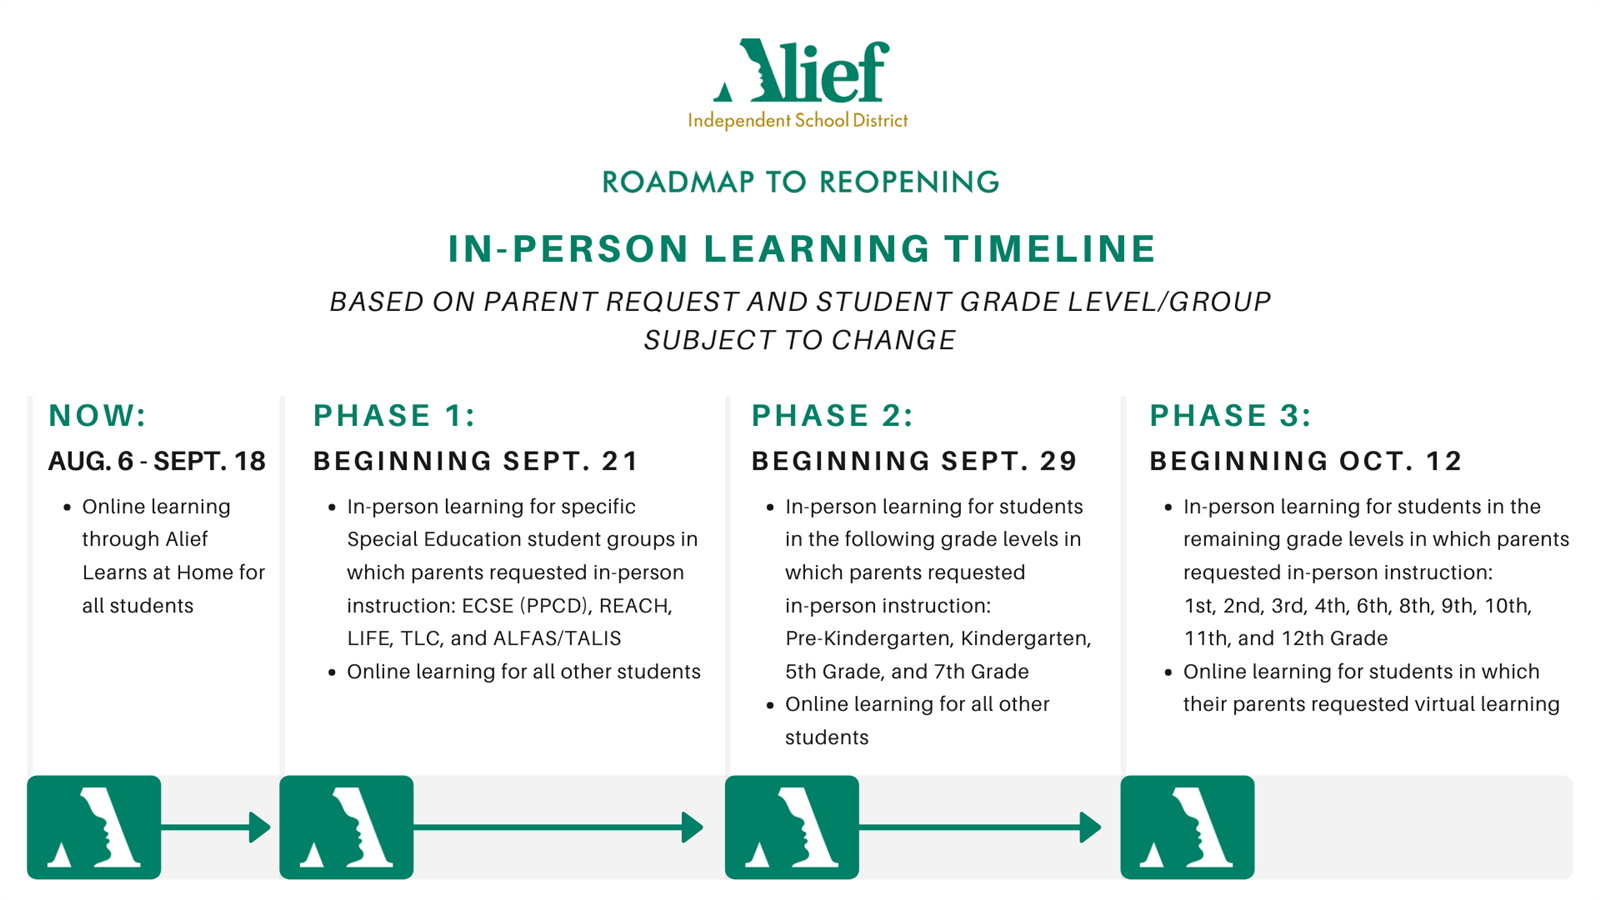 In-Person Learning Timeline Phases 1-3 in English